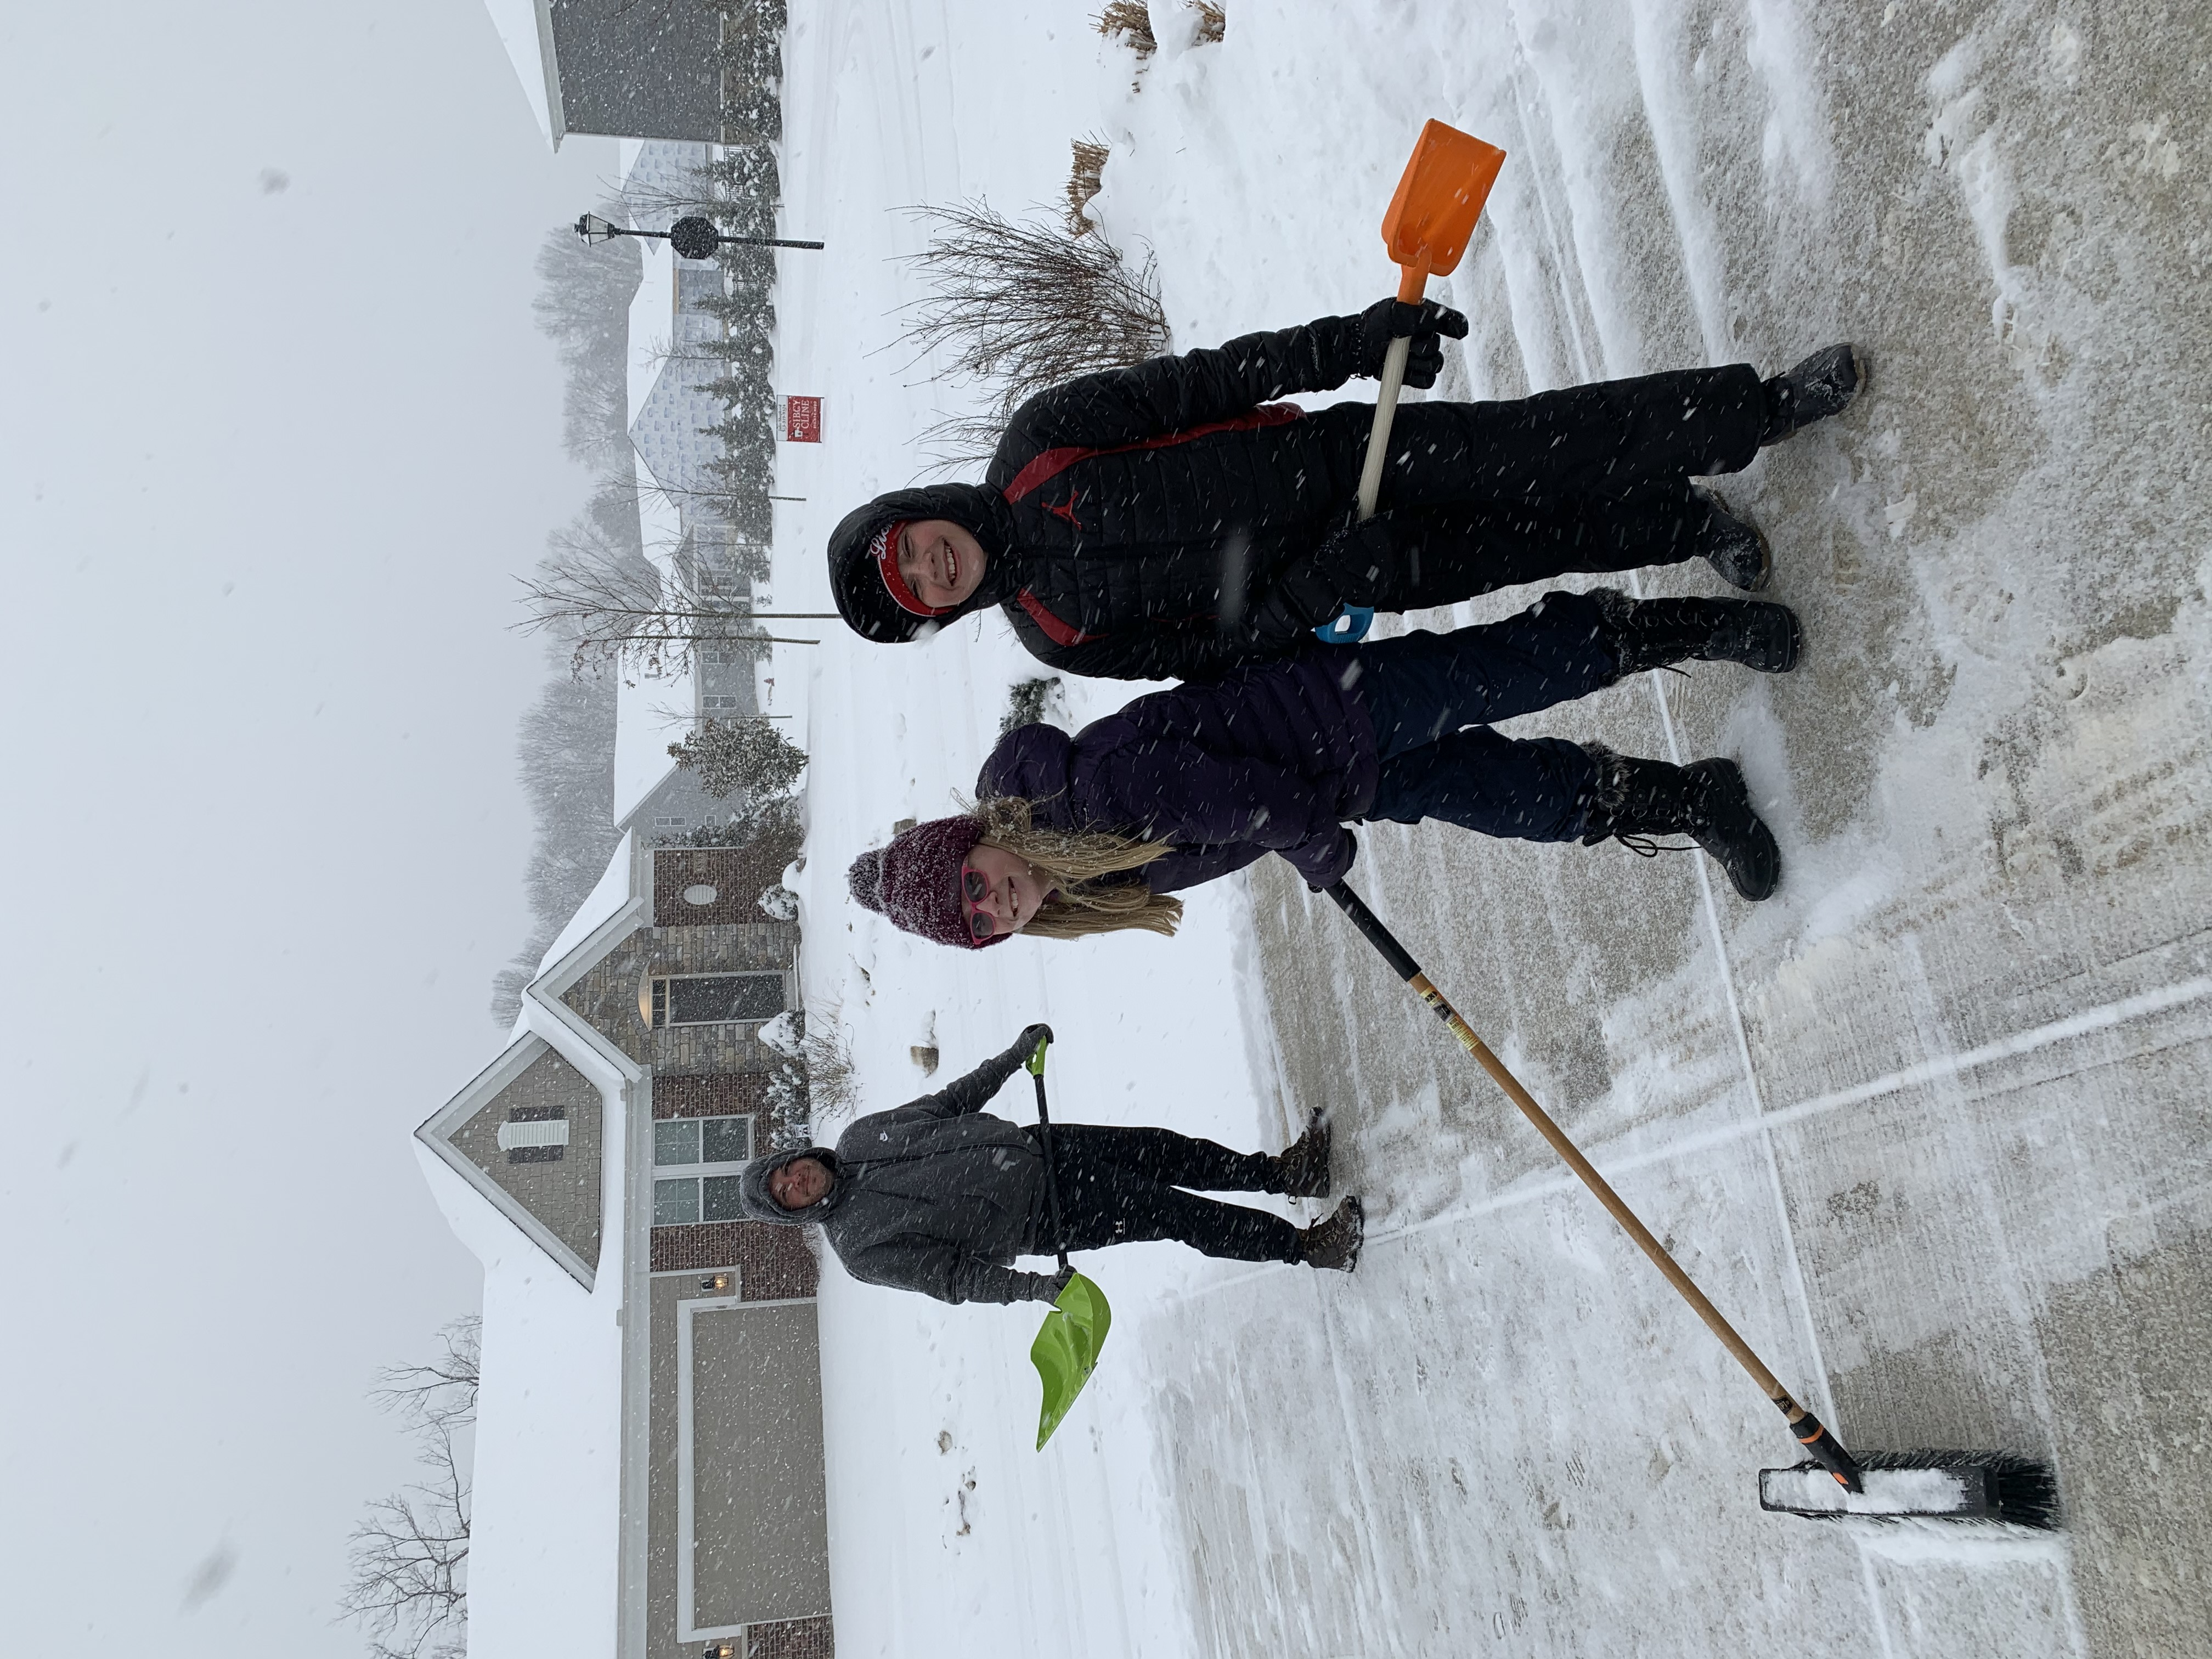 Students clearing snow from driveway